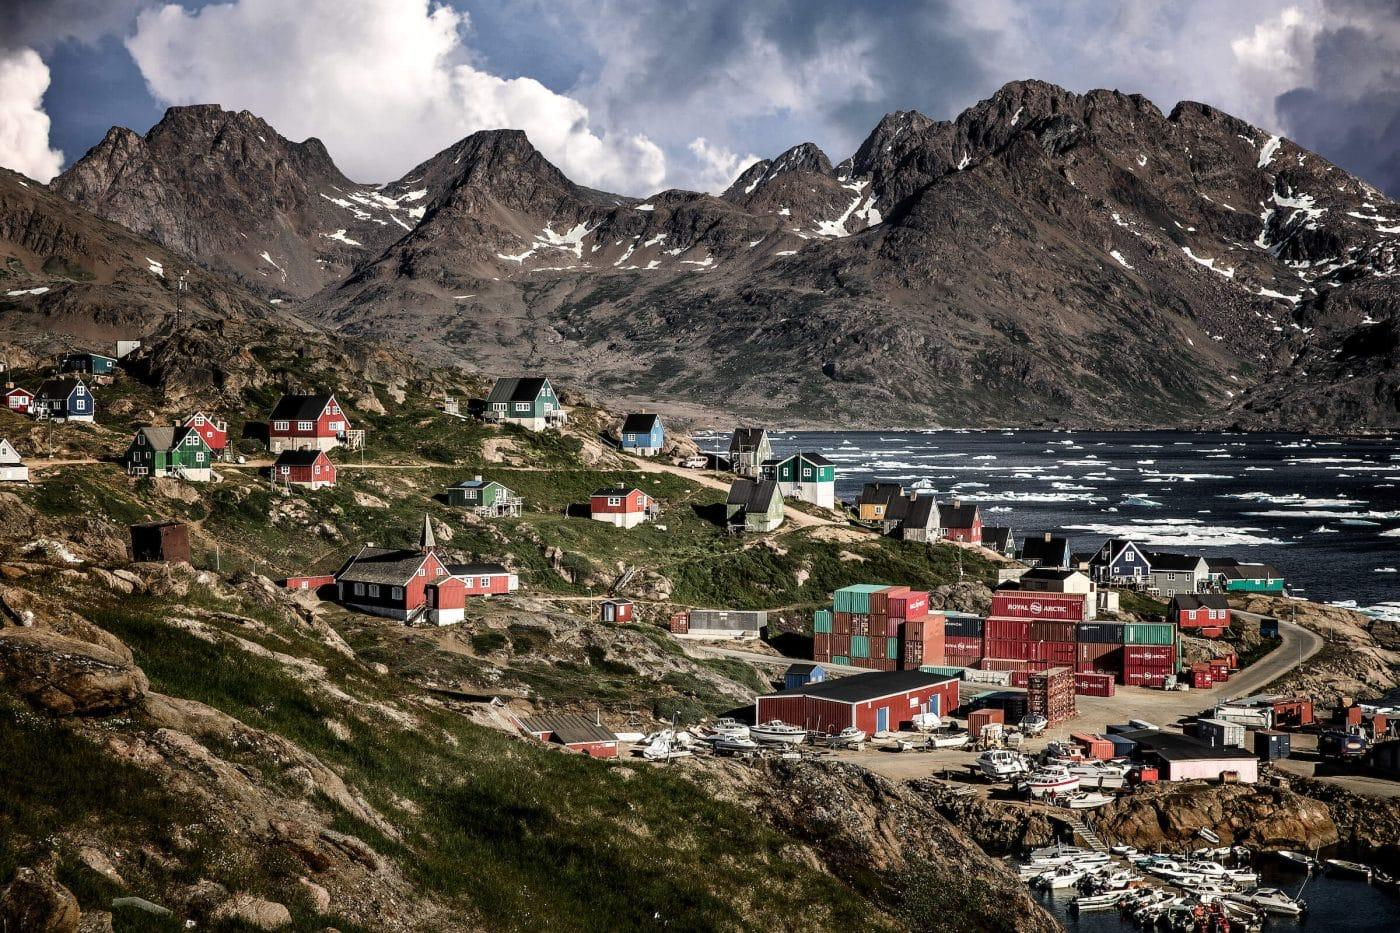 A summer view over parts of Tasiilaq in East Greenland, by Mads Pihl